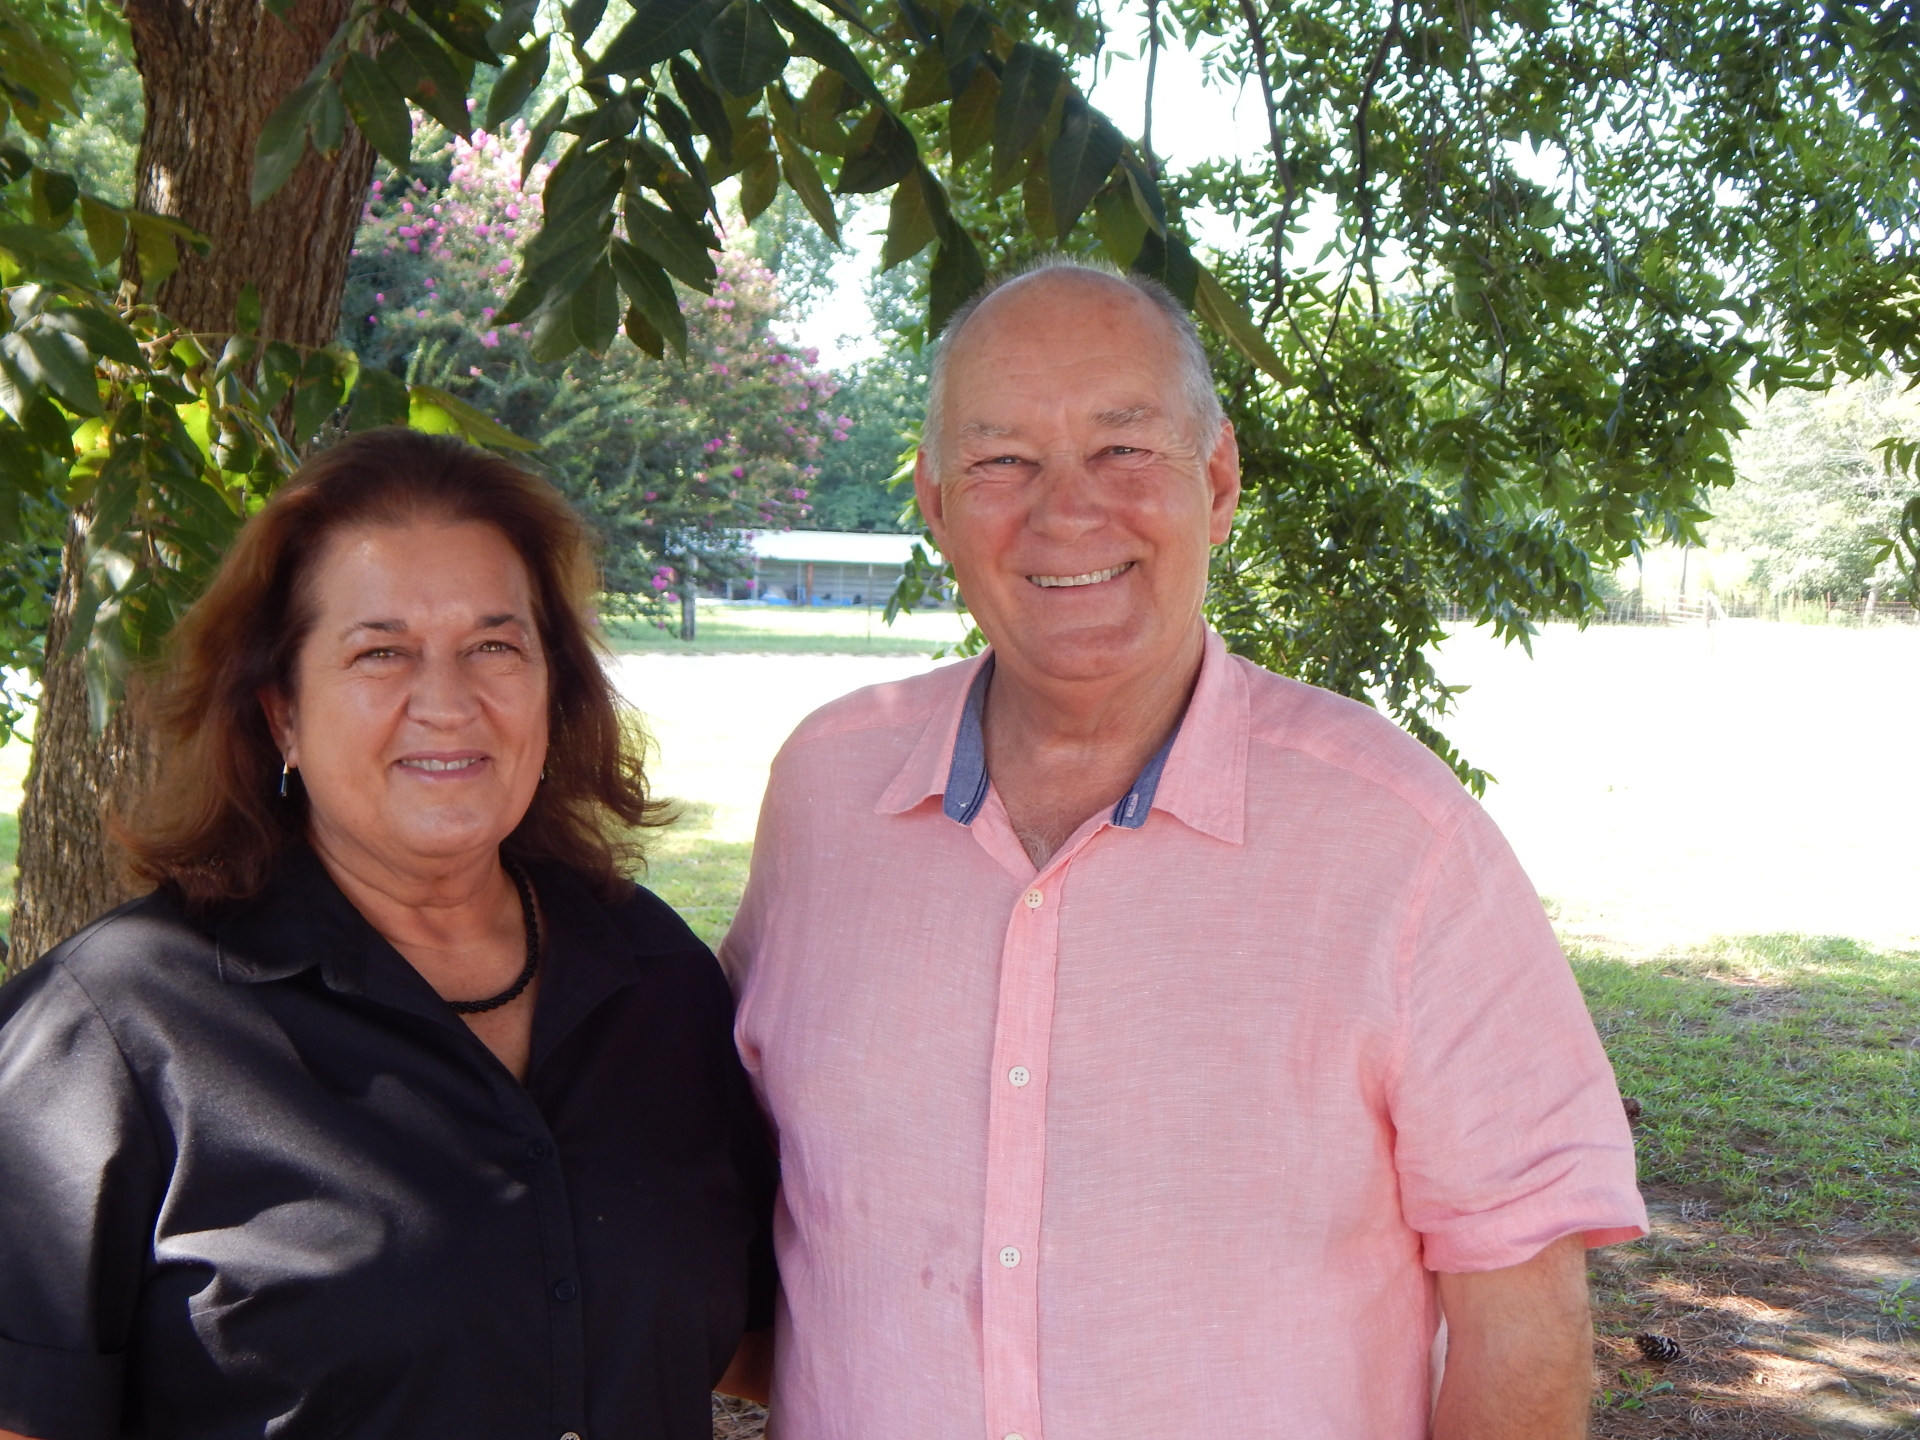 Owners: Debbie and Brent Jackson